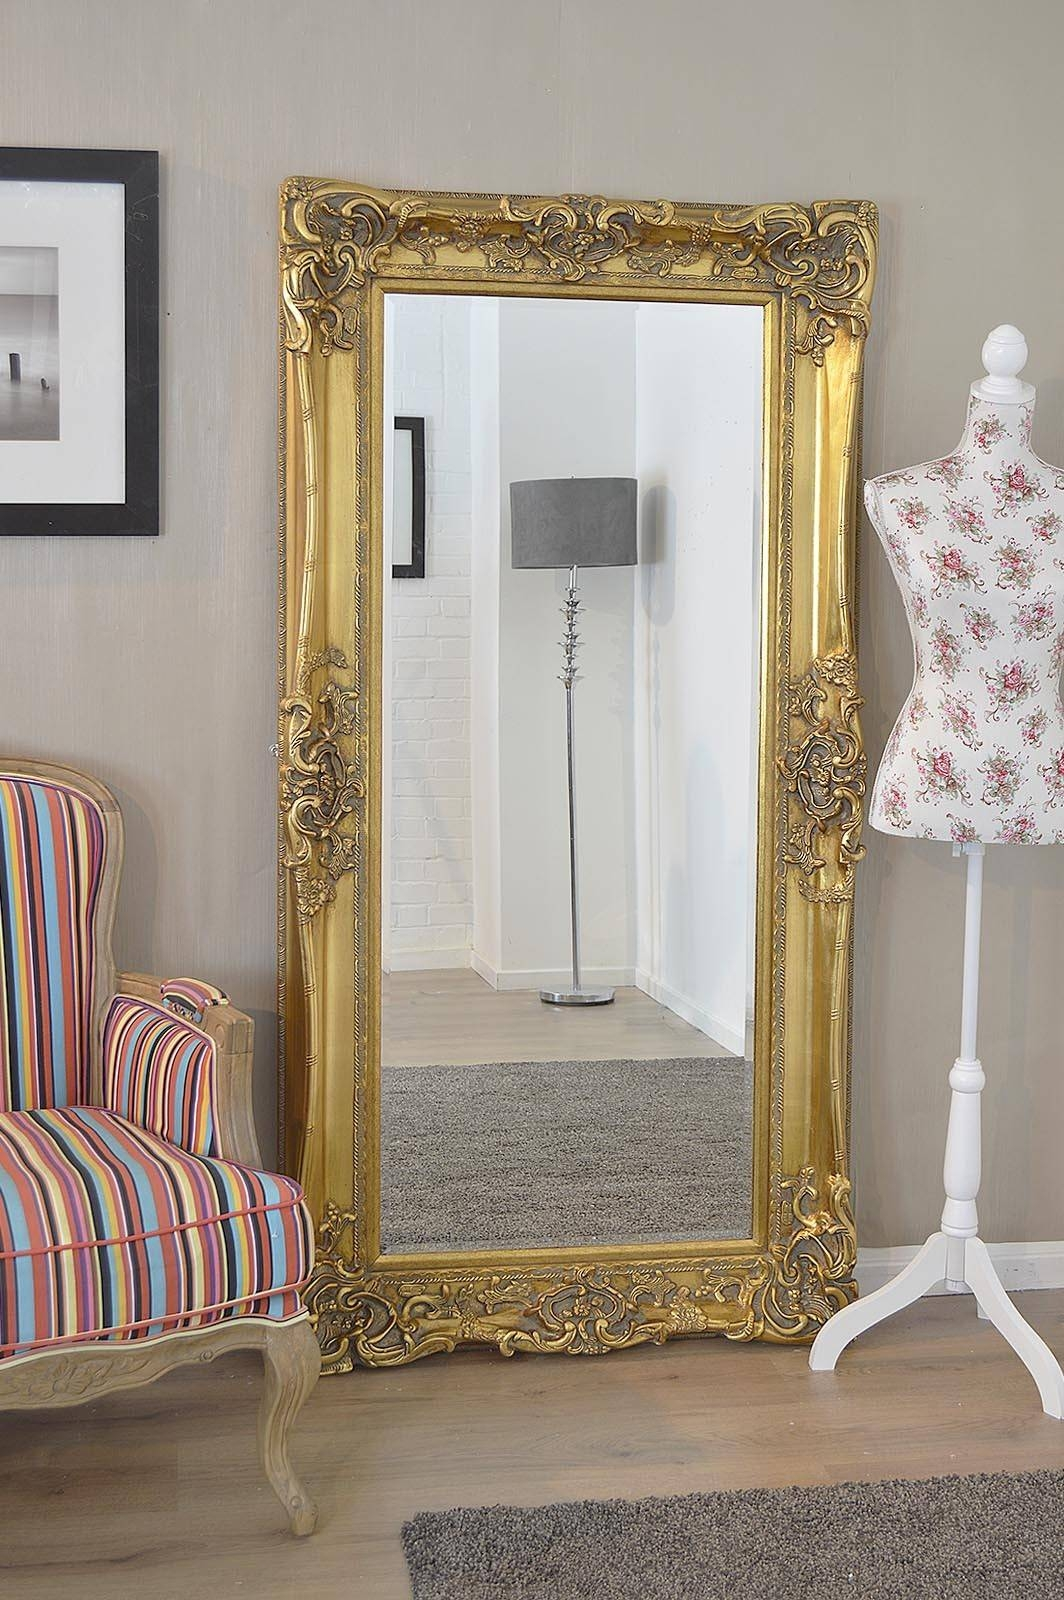 Exceptional Antique Wall Mirror Styles Plus Large Black Framed with Massive Wall Mirrors (Image 8 of 25)